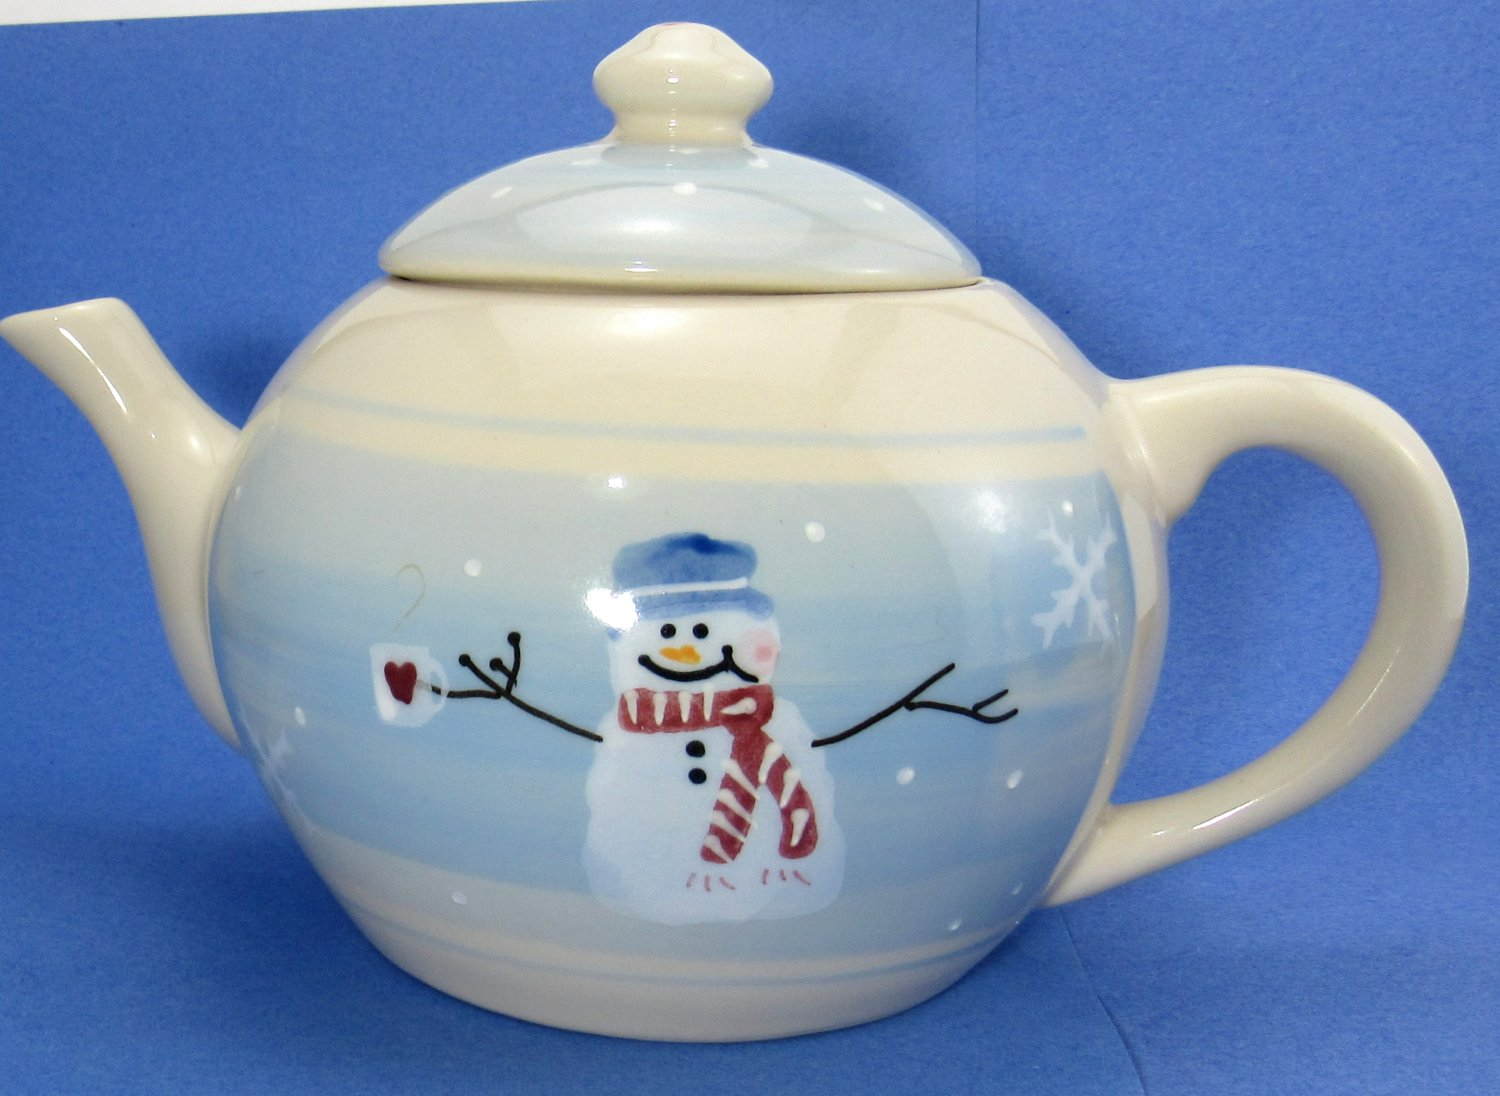 Hartstone Snow People Pattern Teapot with Lid 6 Cup Large Light Cream and Ice Blue Colors